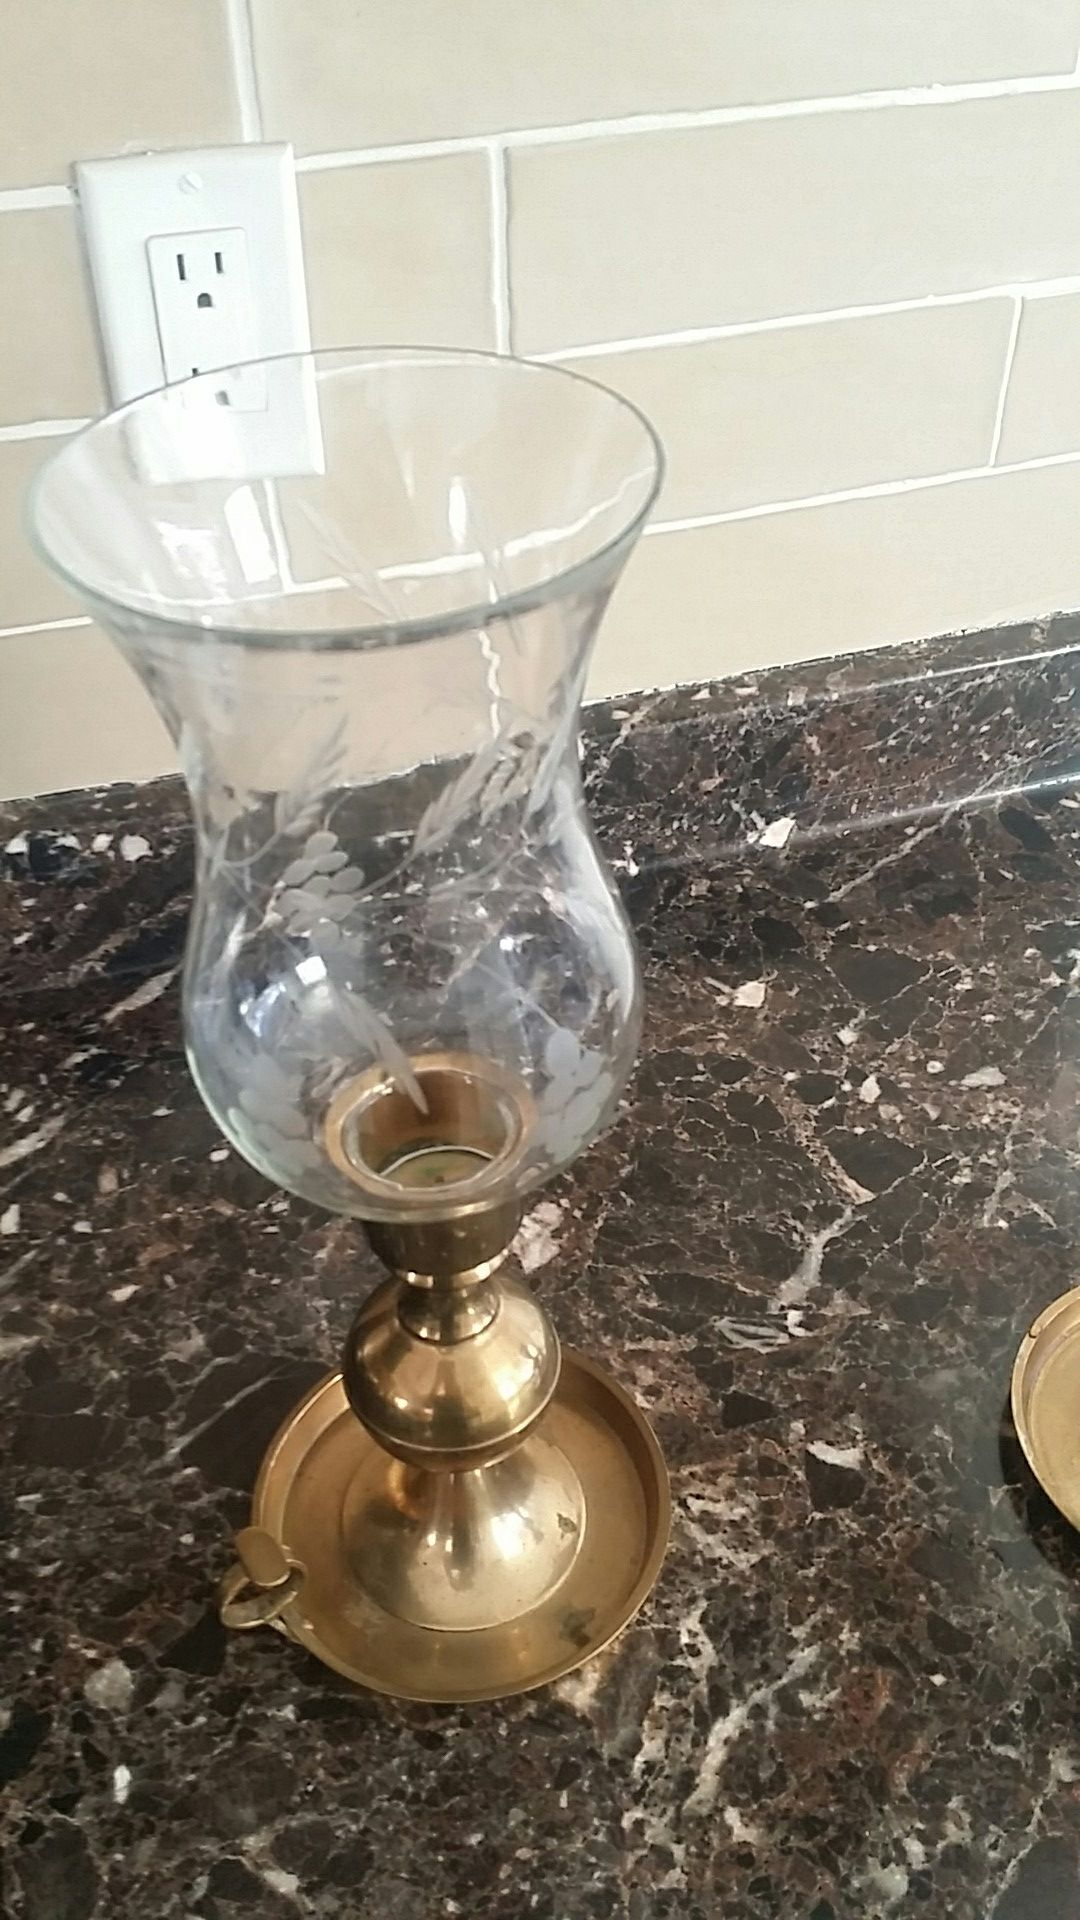 Brass candle stick holder 40.00 for 2 obo